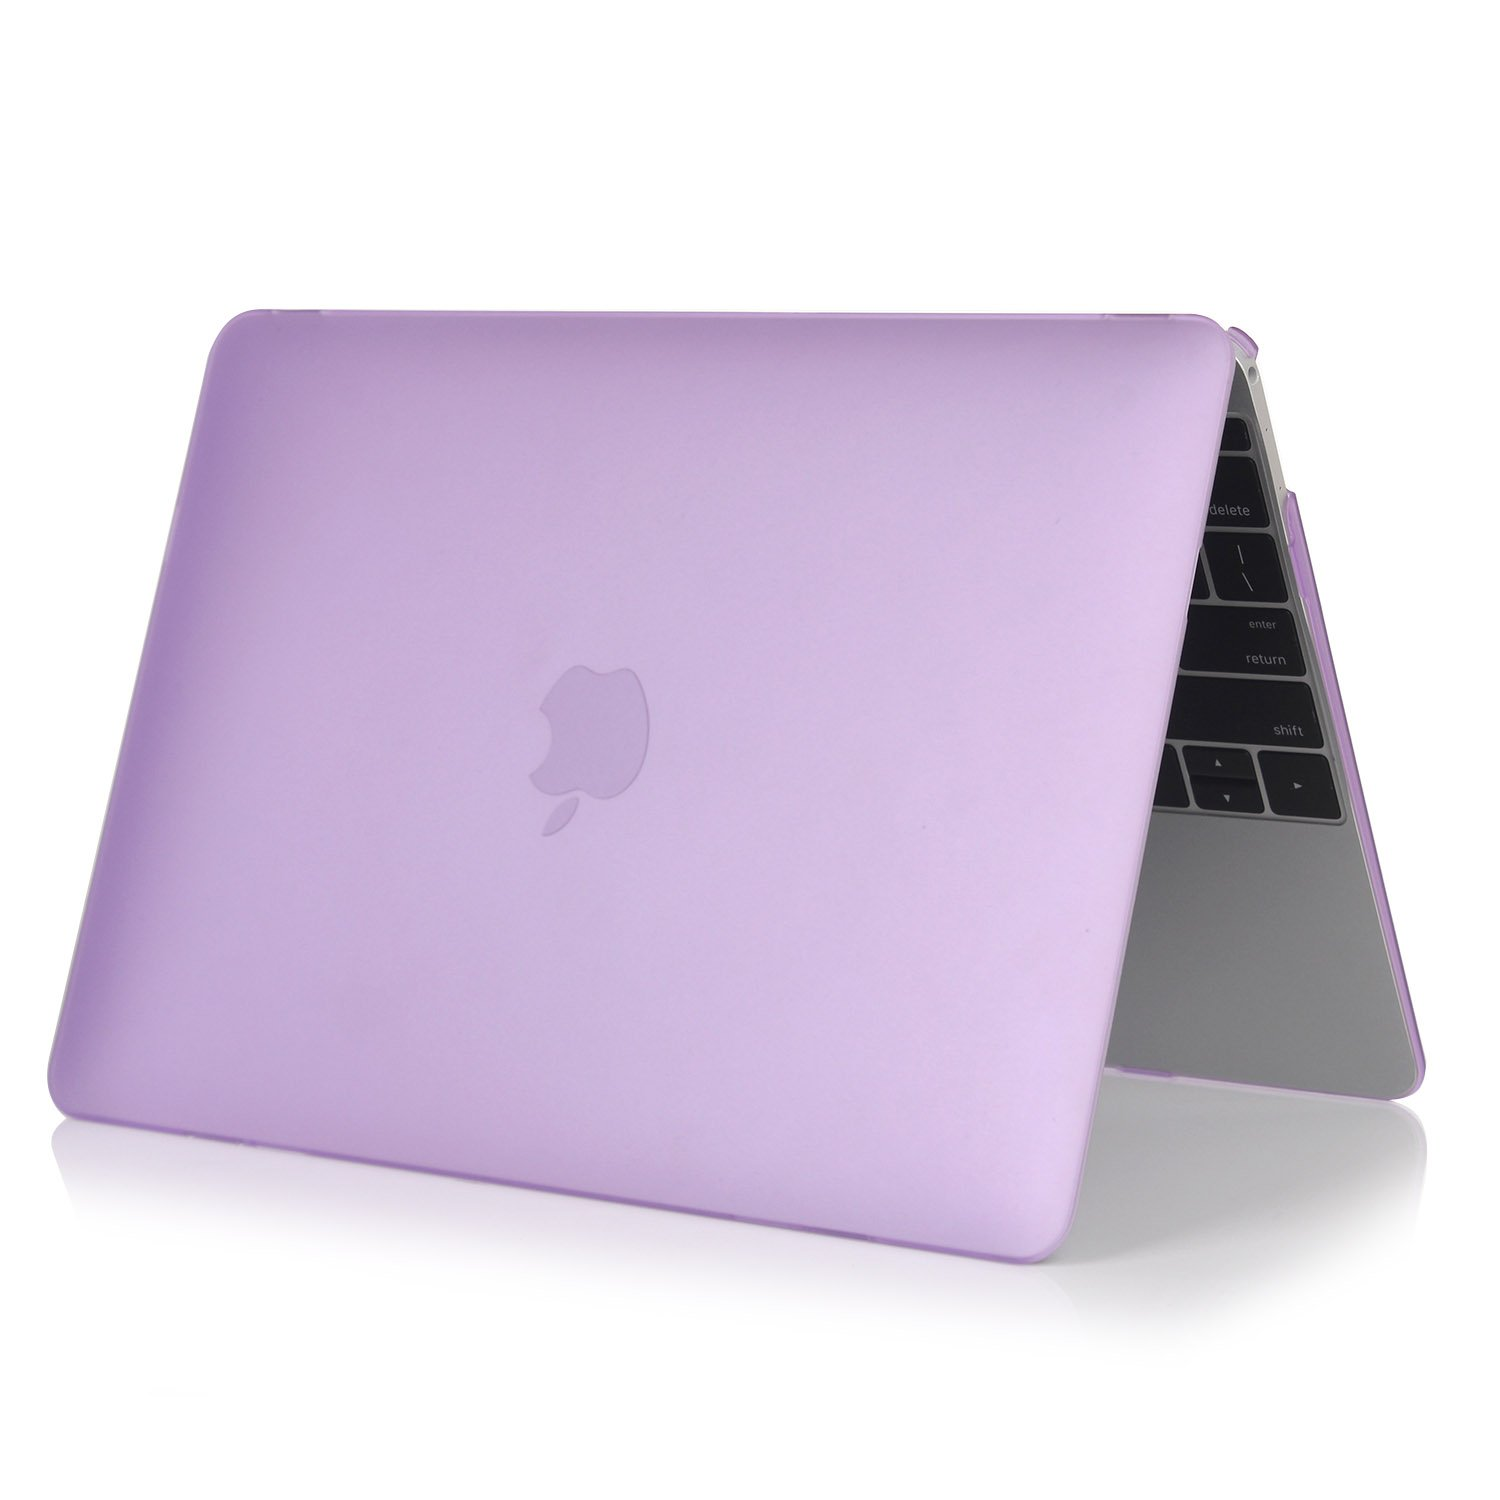 """11.6"""" MOSISO PURPLE Matte Case for MacBook Air Laptop SERENITY BLUE FAST FREE SHIPPING USA"""